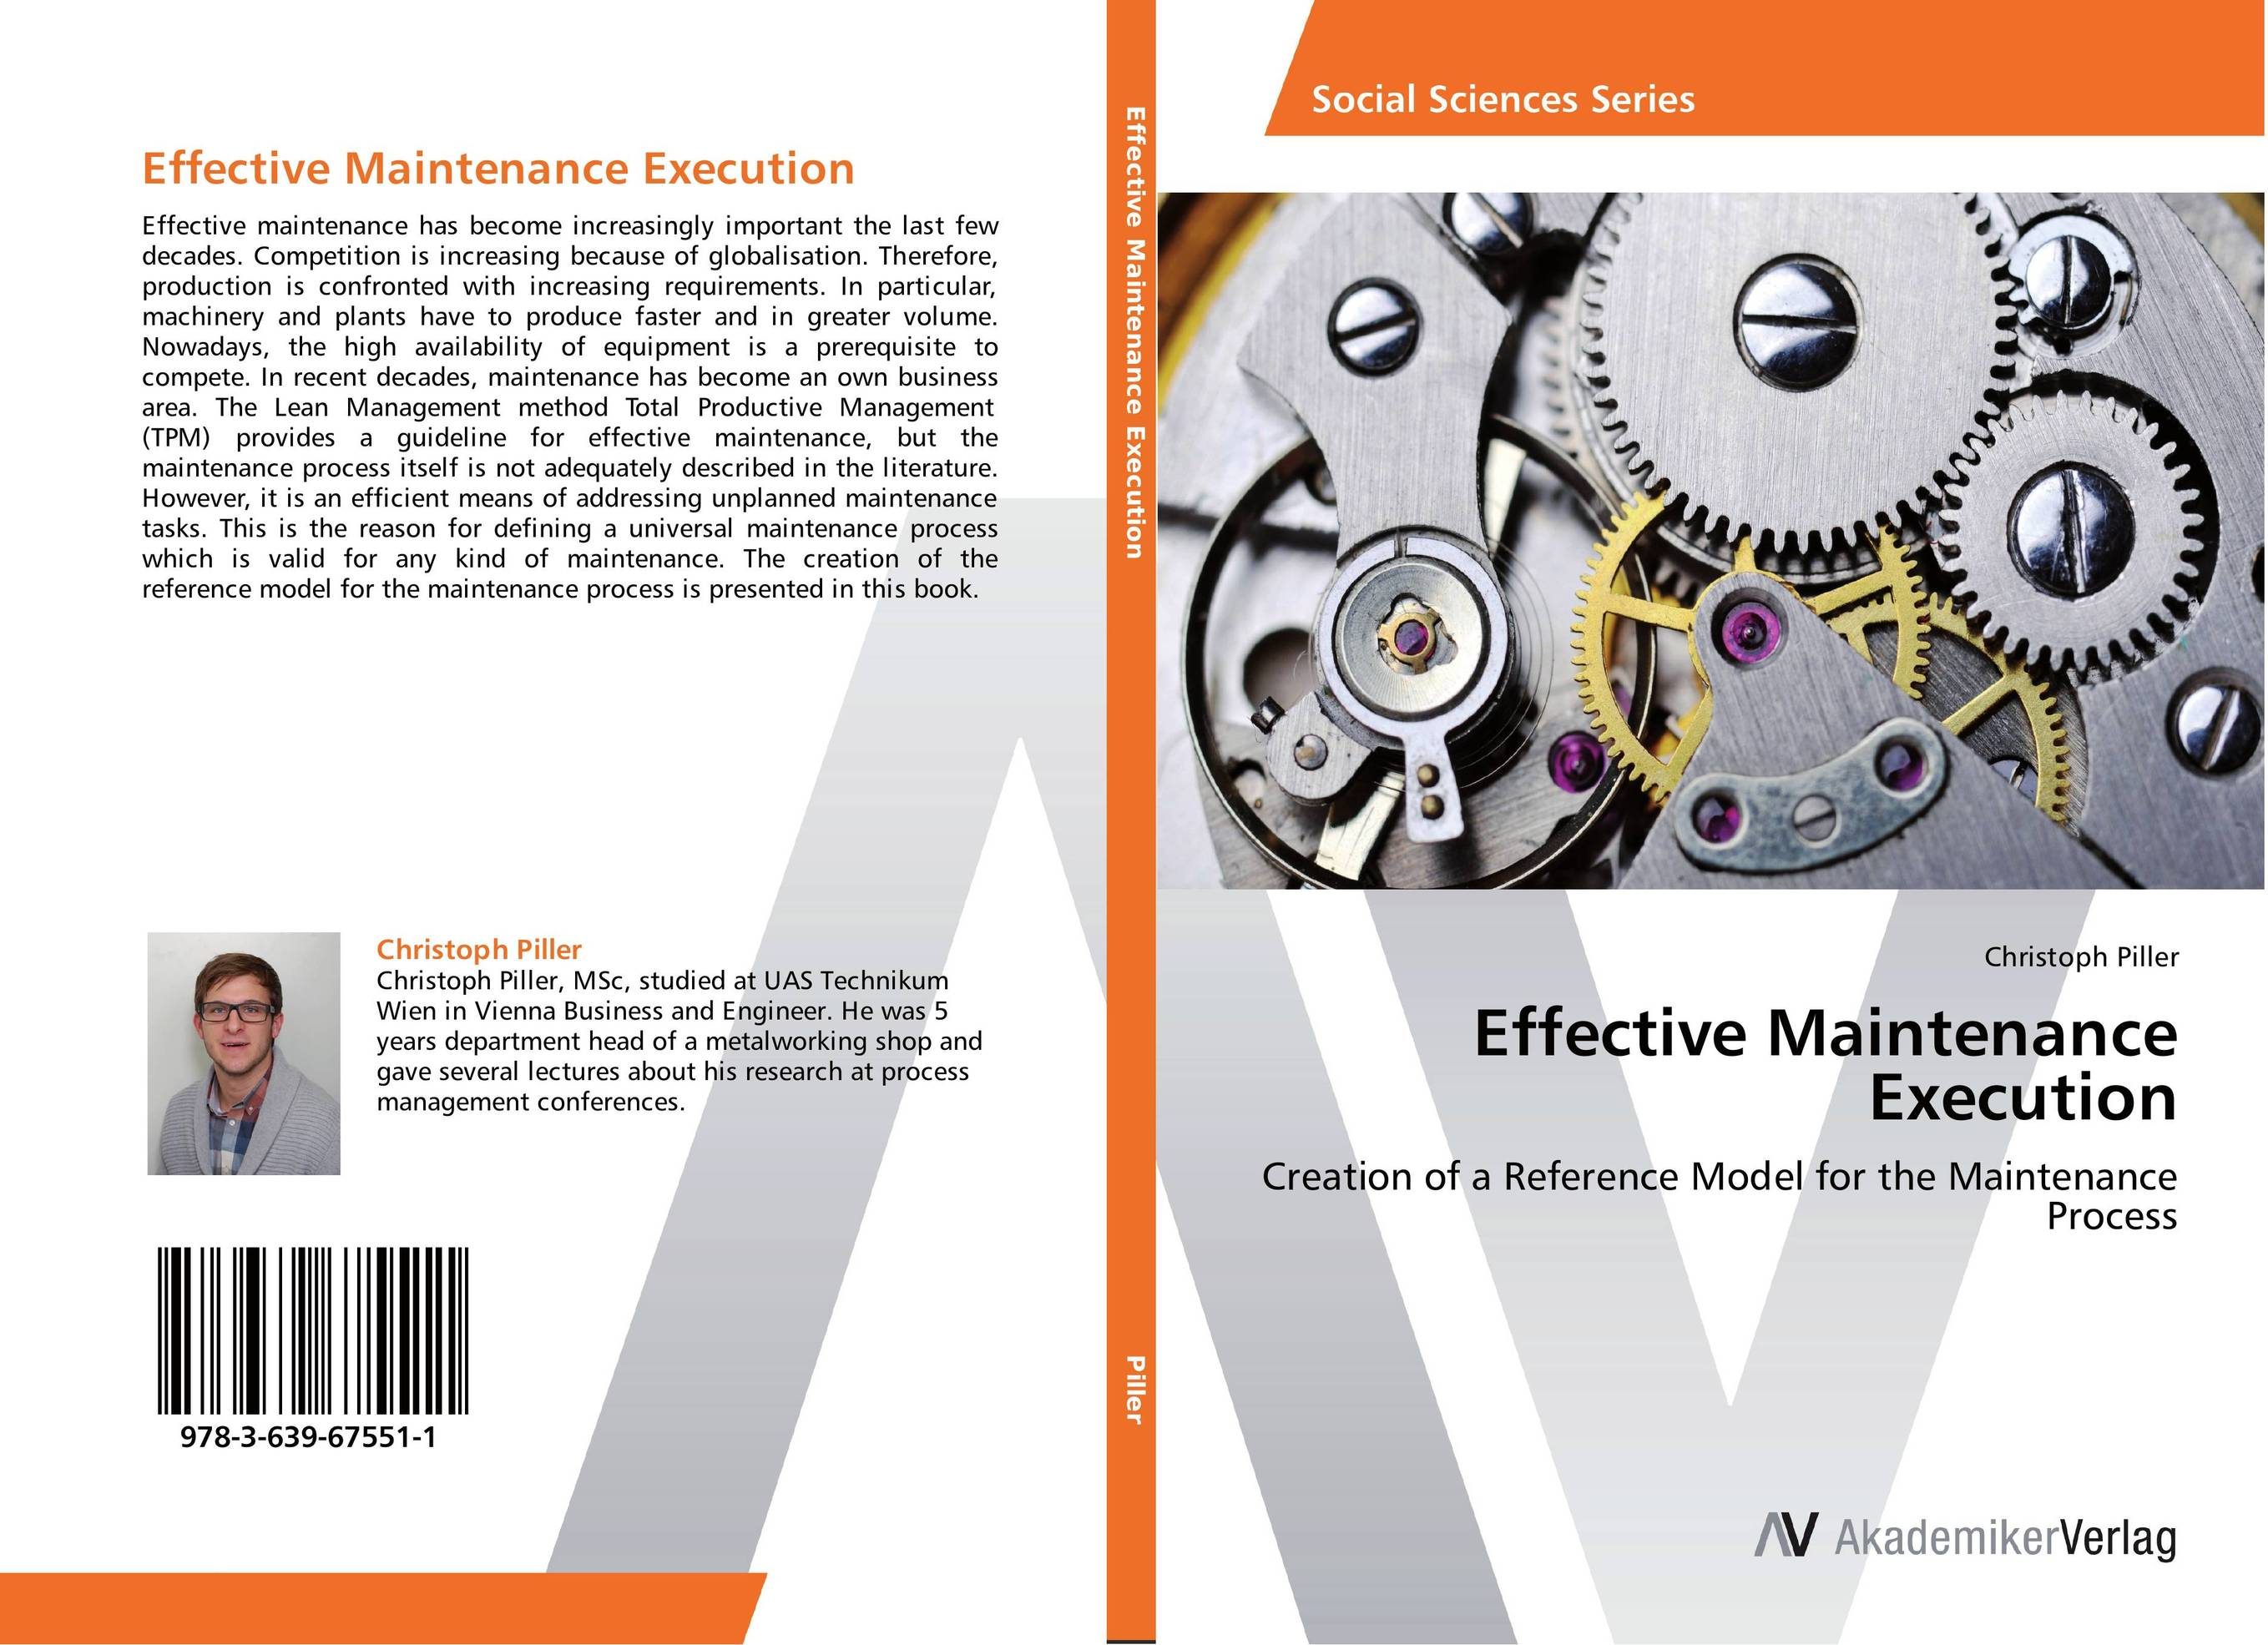 Effective Maintenance Execution